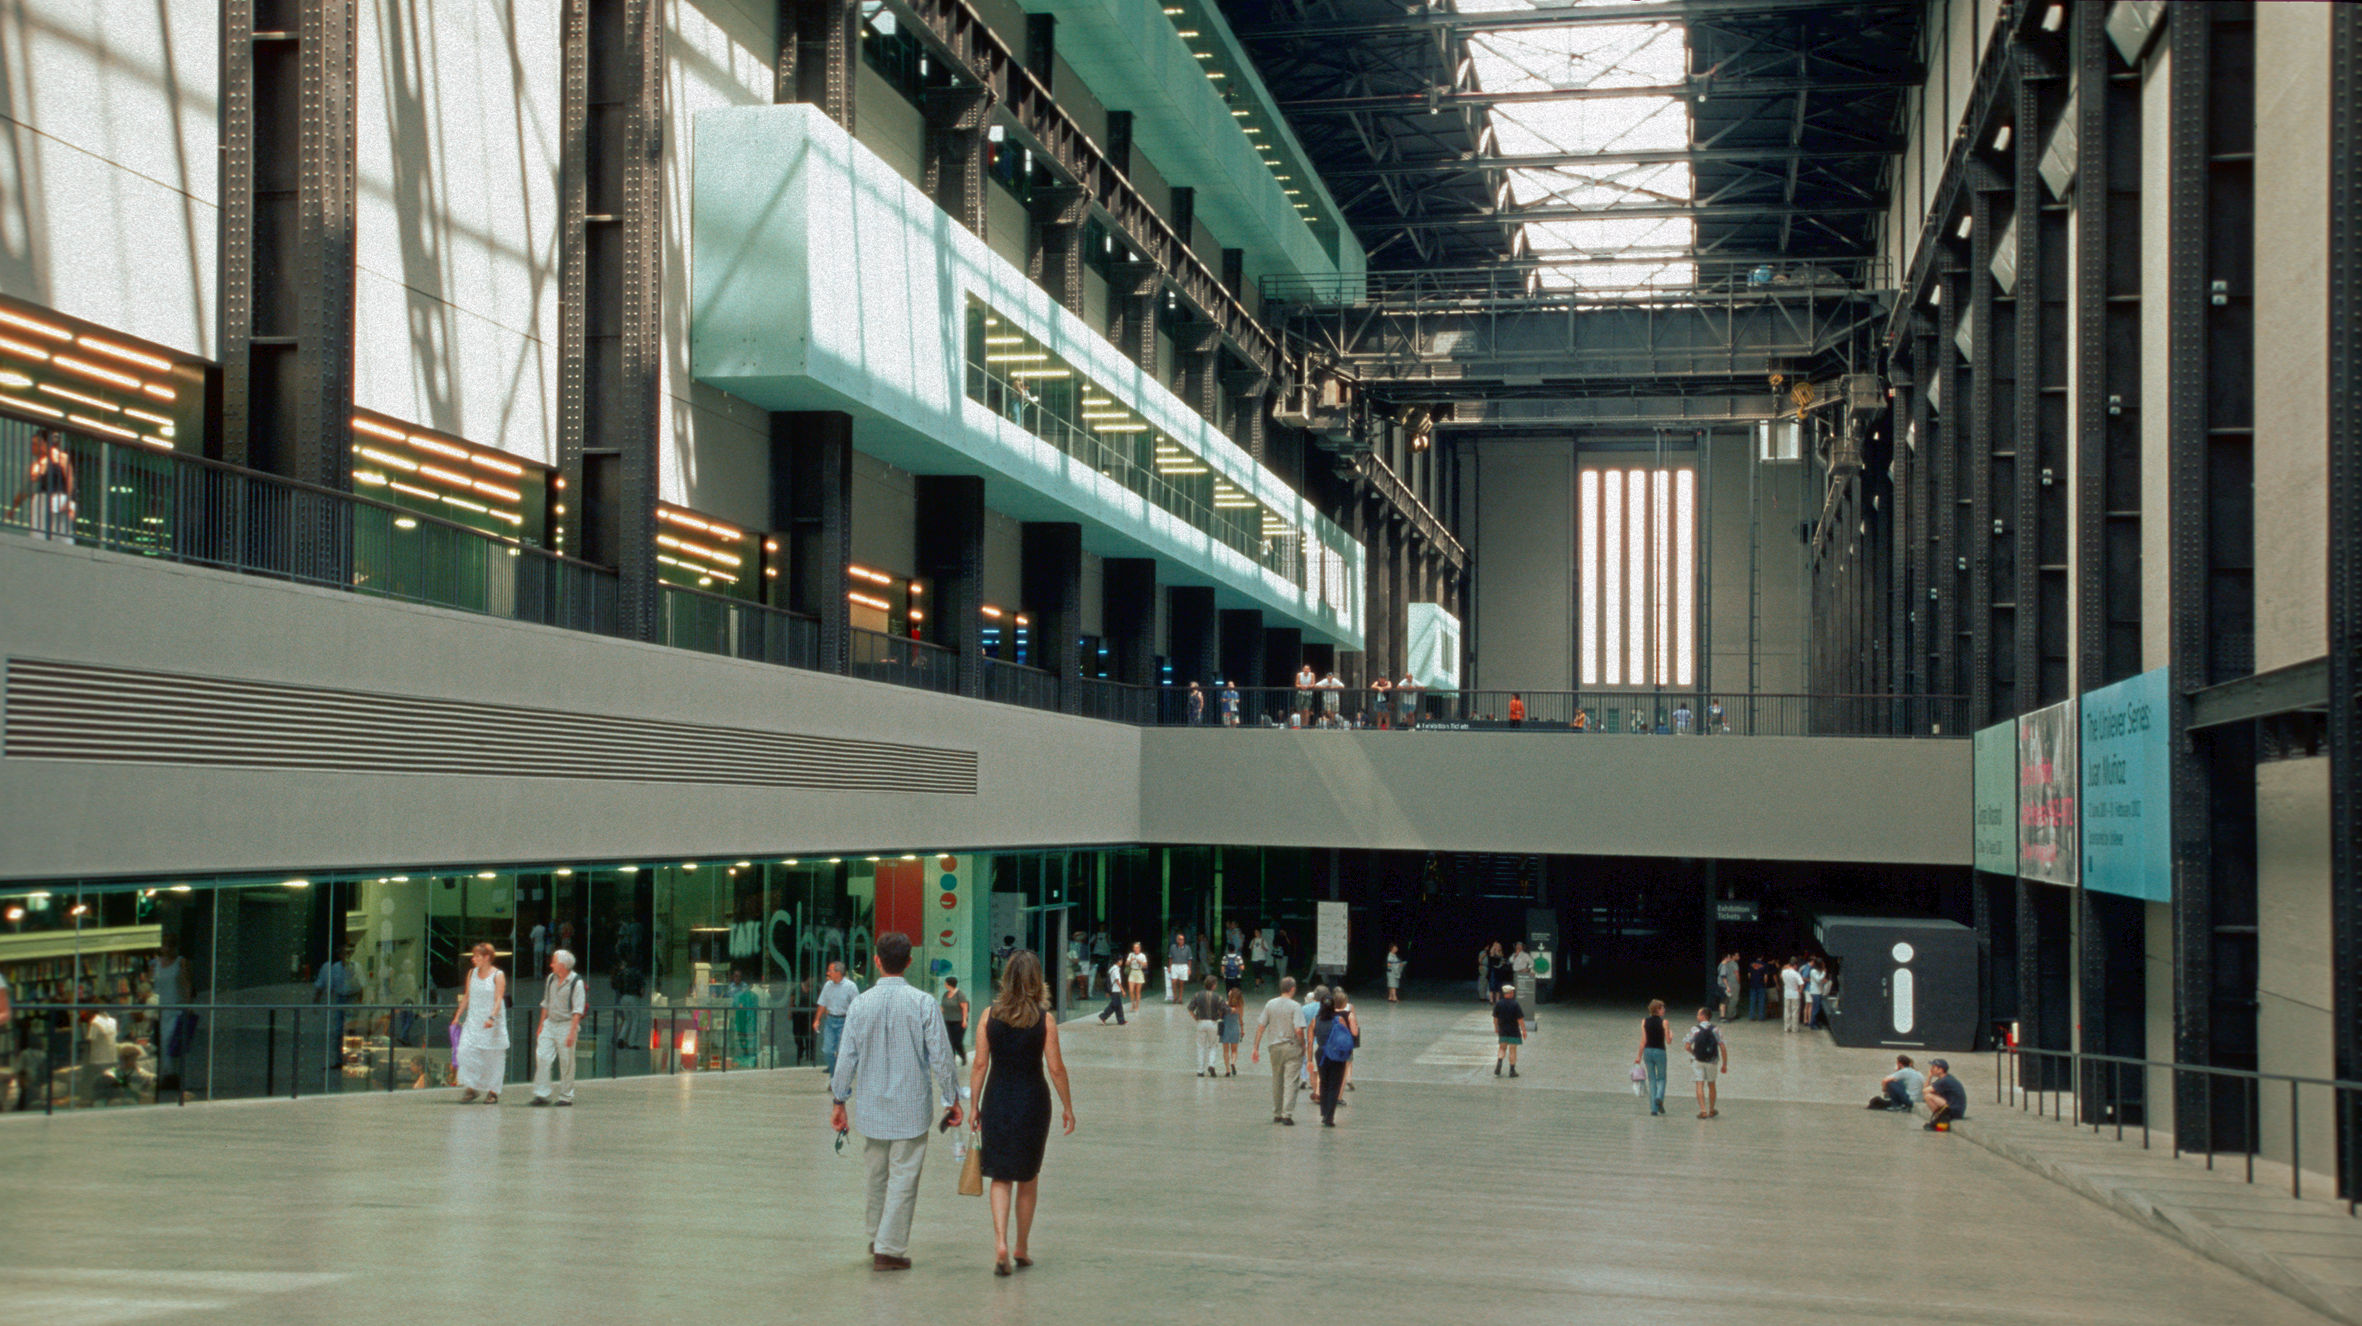 Will you meet The One at Turbine Hall?